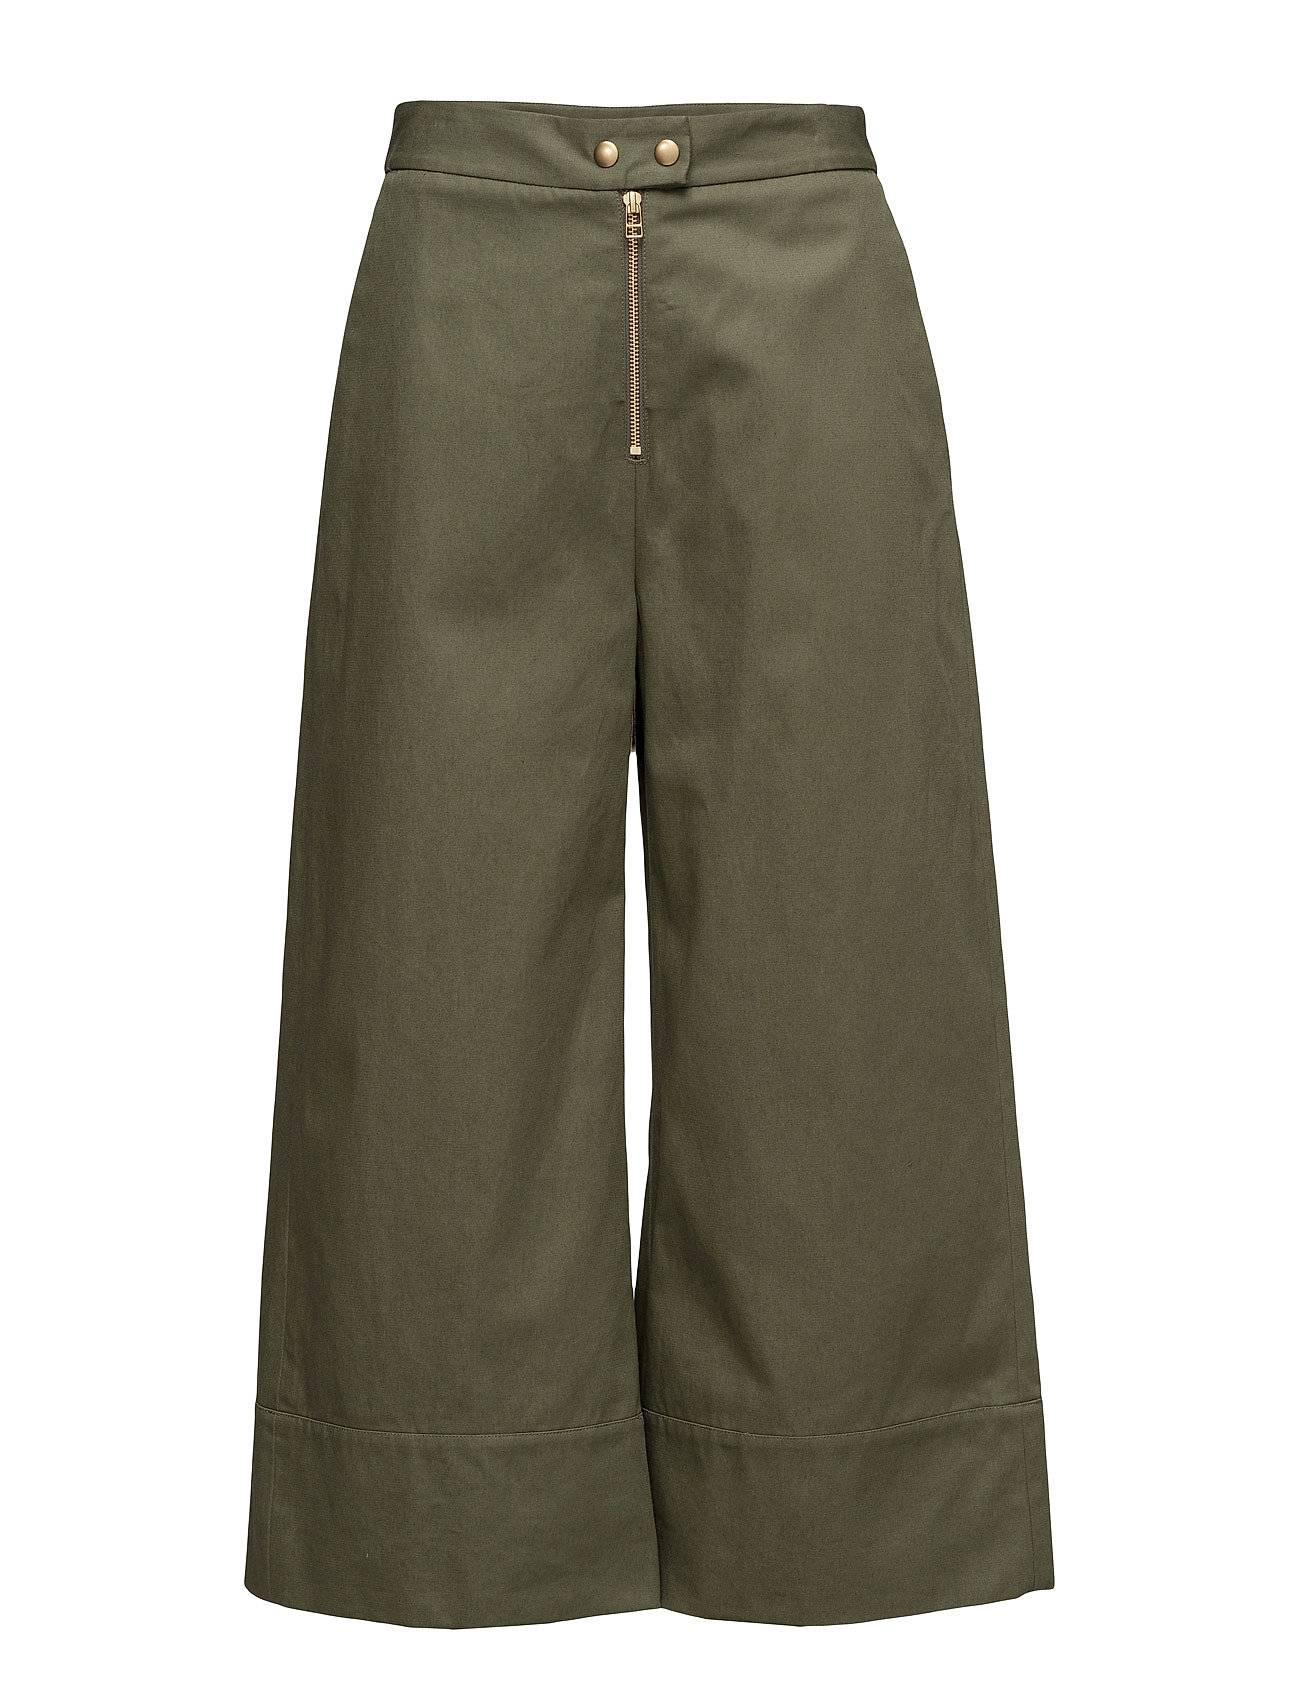 T by Alexander Wang Garment Washed Lightweight Cotton Cropped Pants